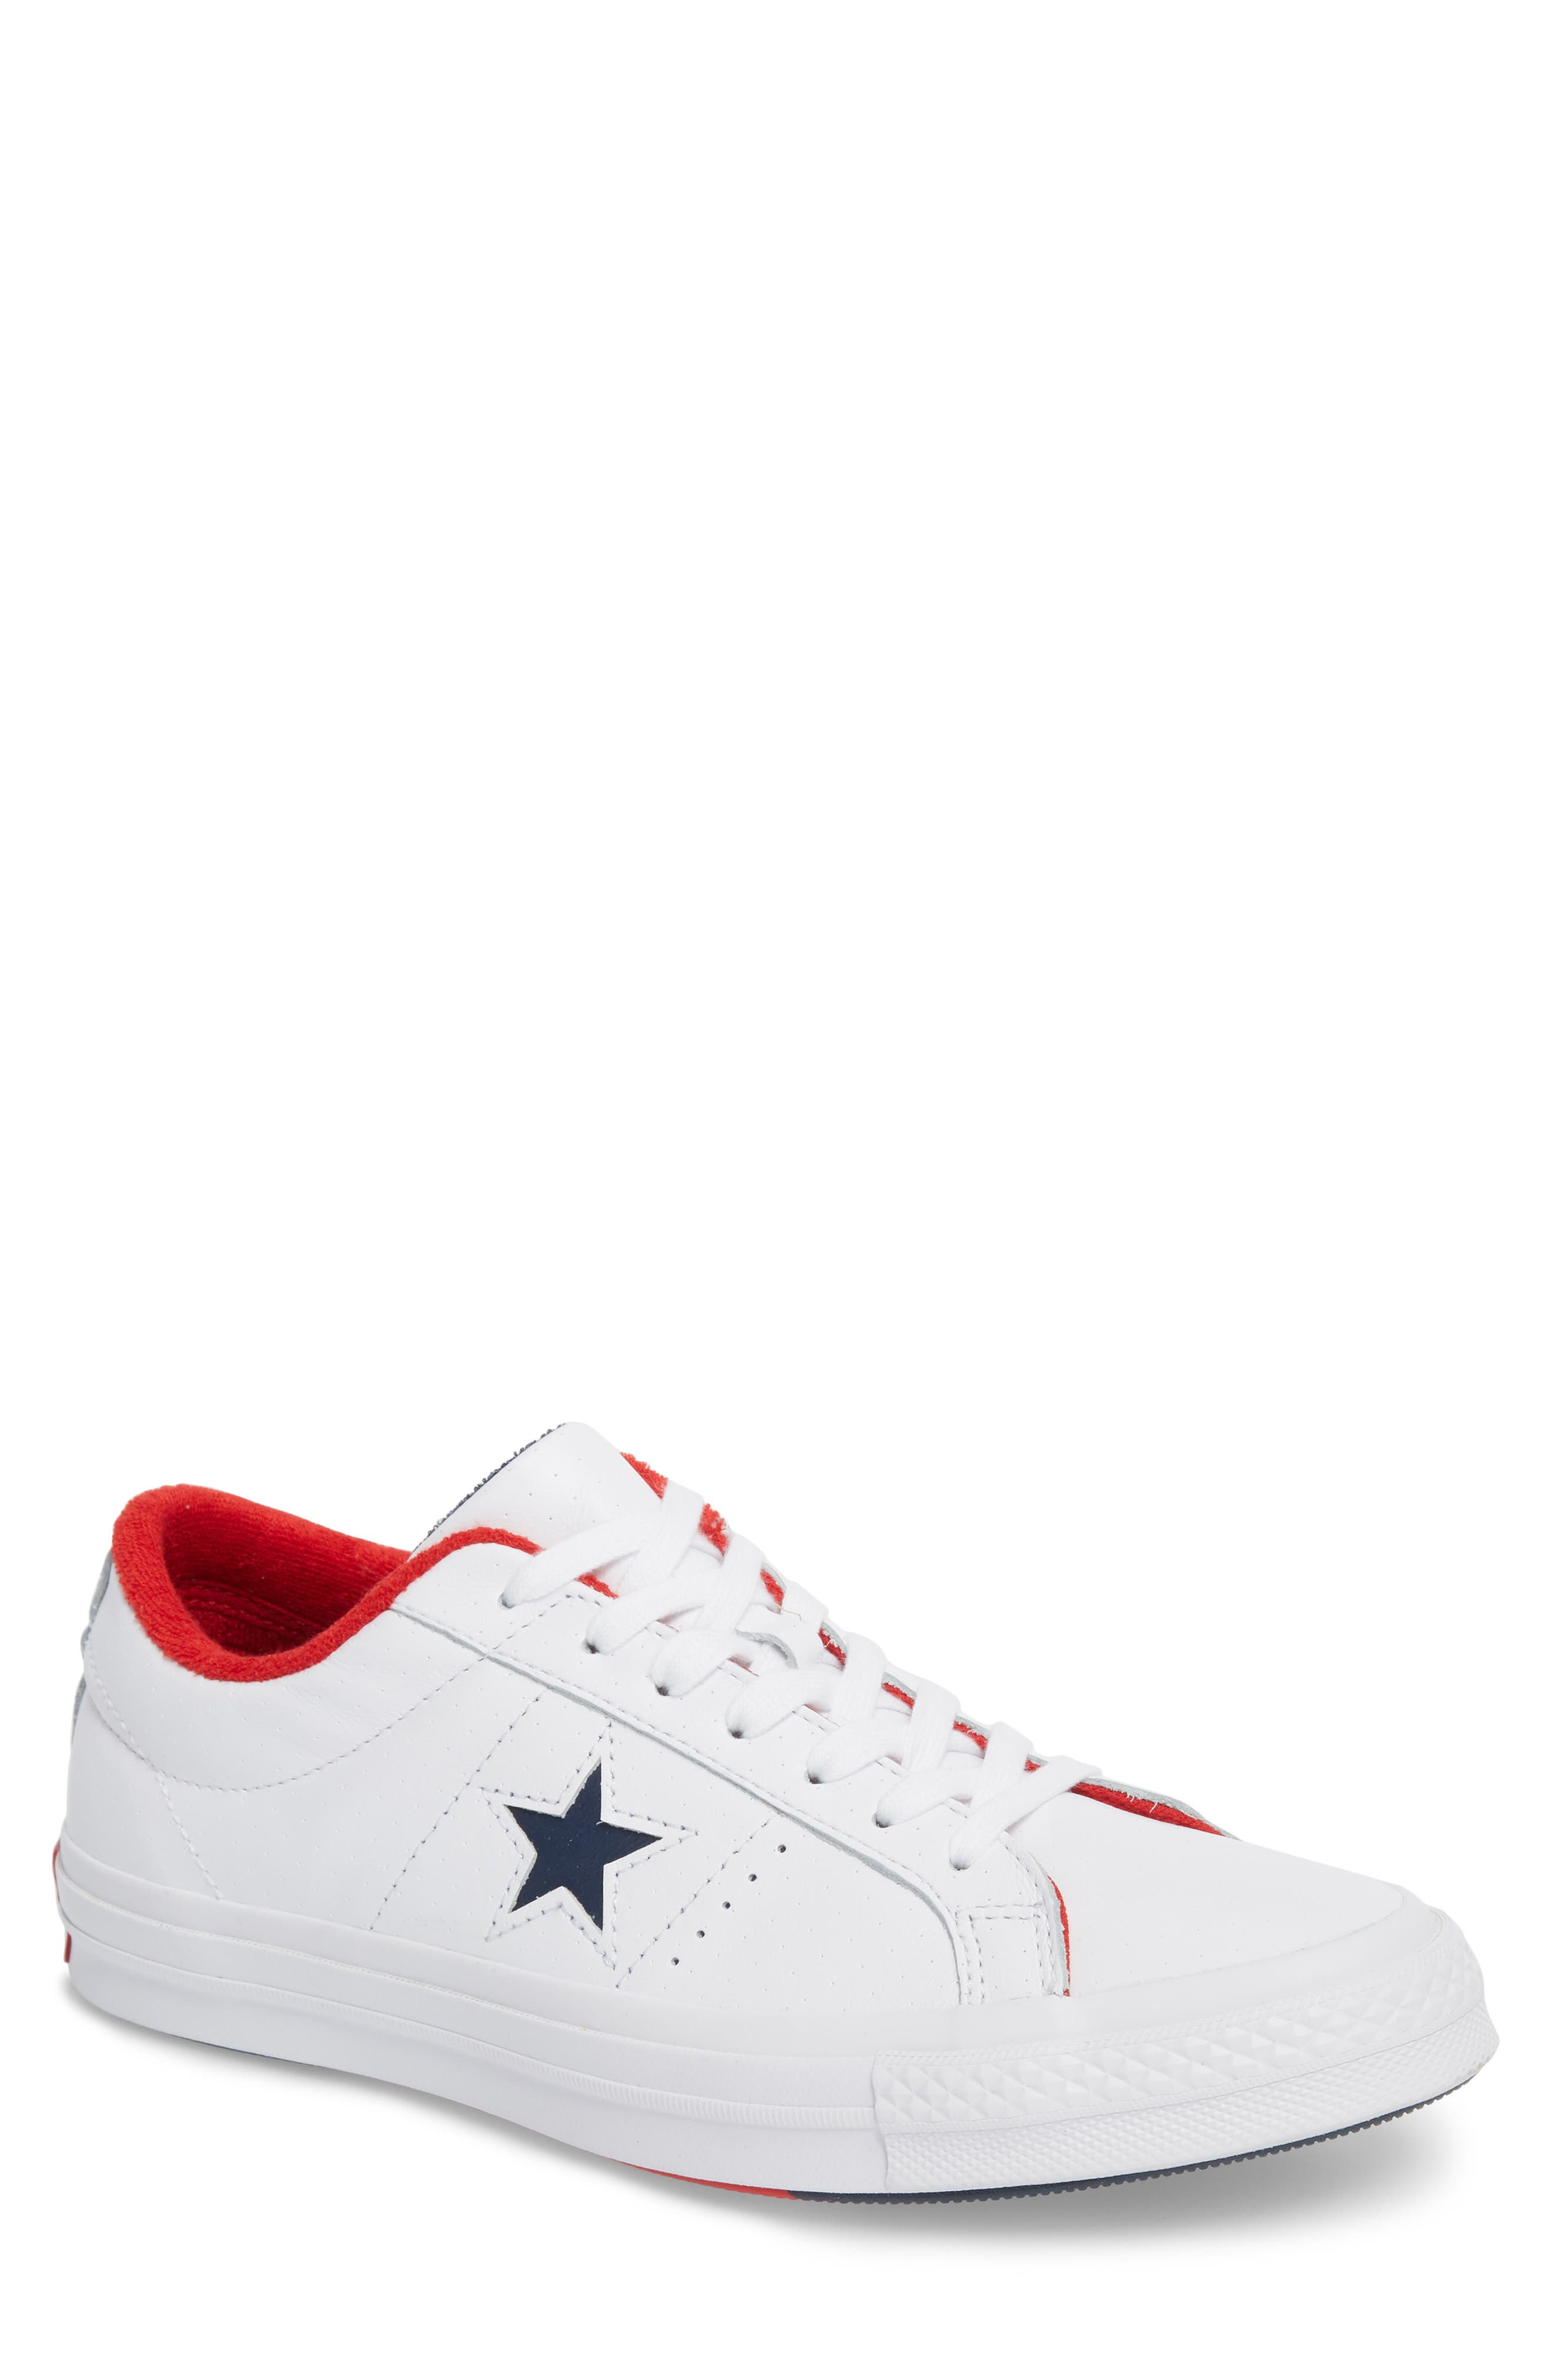 Chuck Taylor<sup>®</sup> One Star Grand Slam Sneaker,                         Main,                         color, White/ Navy Leather